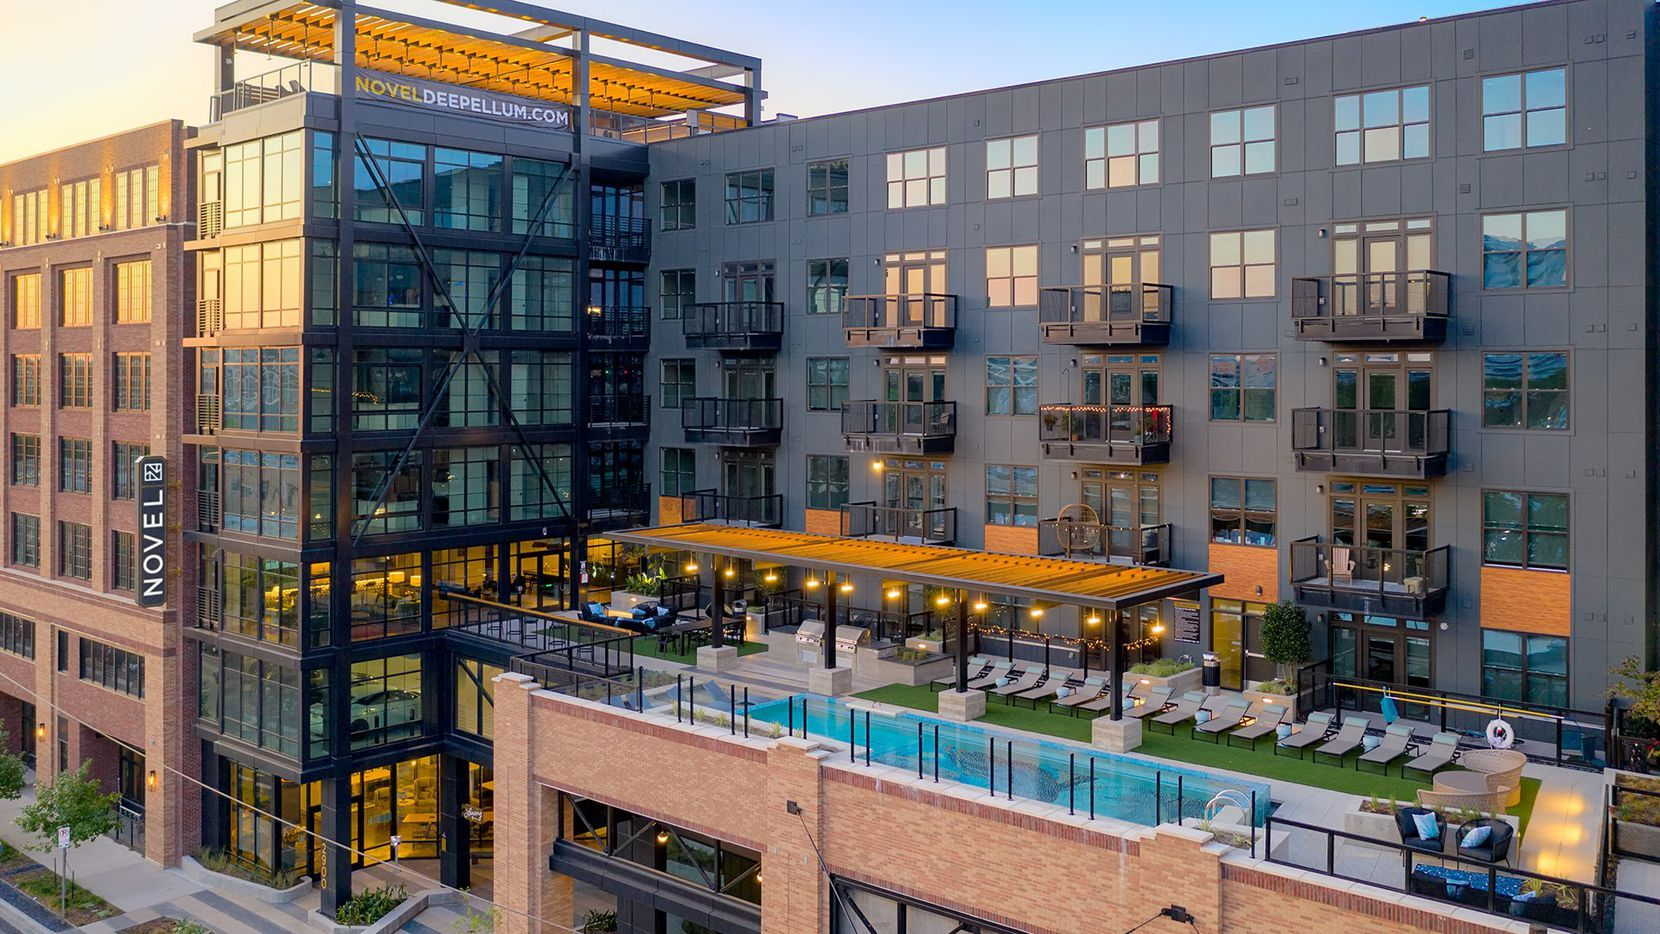 The seven-story Novel Deep Ellum apartments and retail building is on Canton Street just east of downtown Dallas.